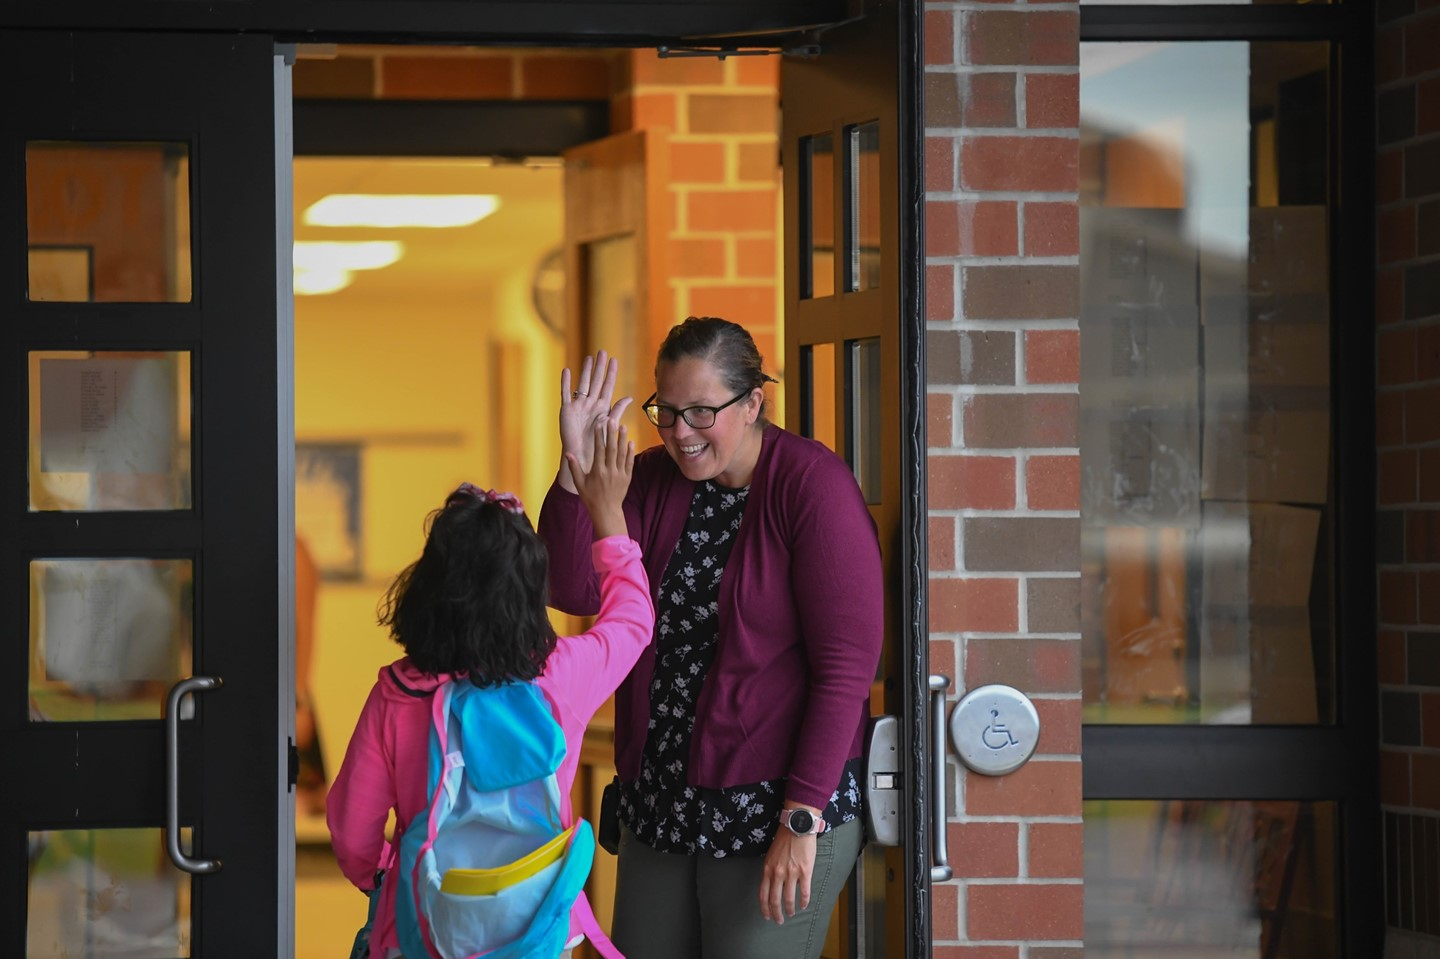 A scholar is high-fived on her way into Admiral King Elementary School